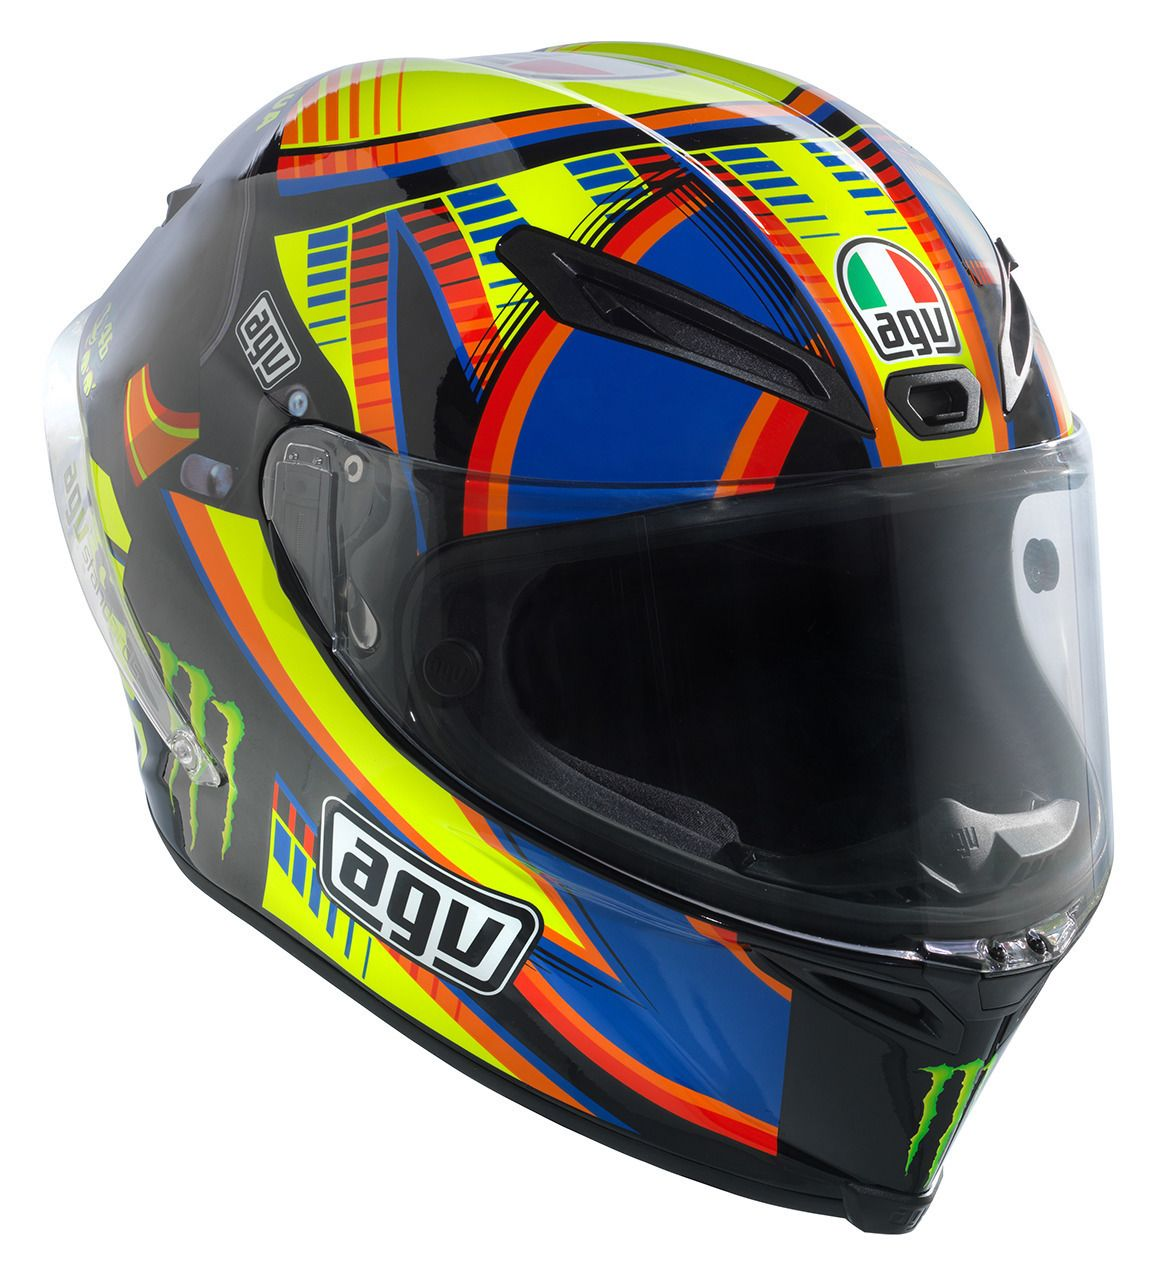 agv corsa double face winter test le rossi helmet size sm. Black Bedroom Furniture Sets. Home Design Ideas